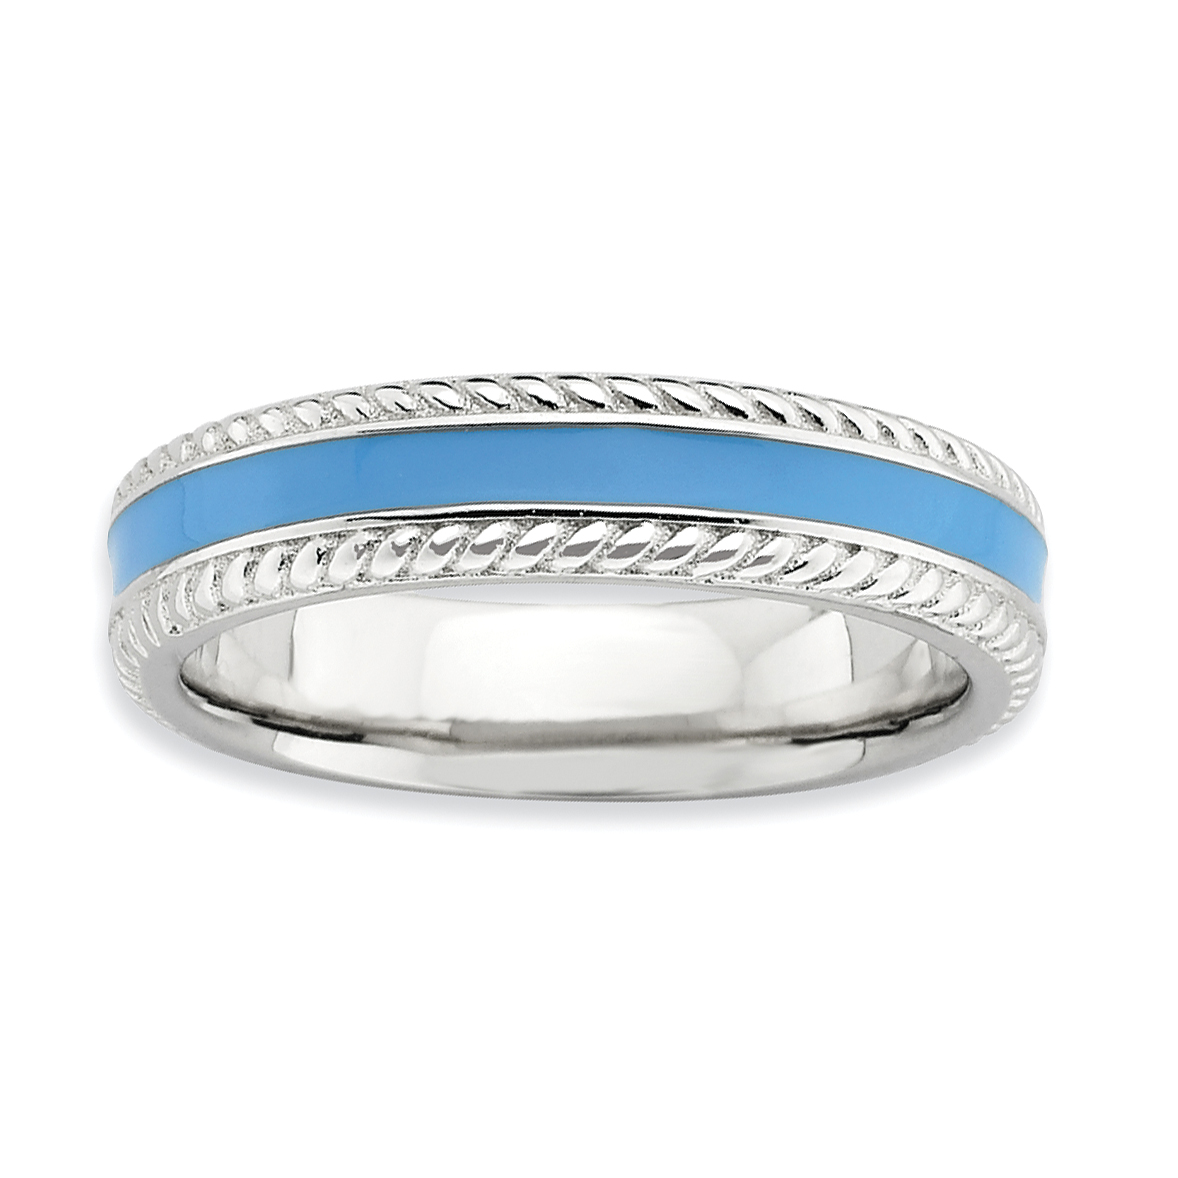 925 Sterling Silver Blue Enameled Band Ring Size 9.00 Stackable Ed Fine Jewelry Gifts For Women For Her - image 3 of 3